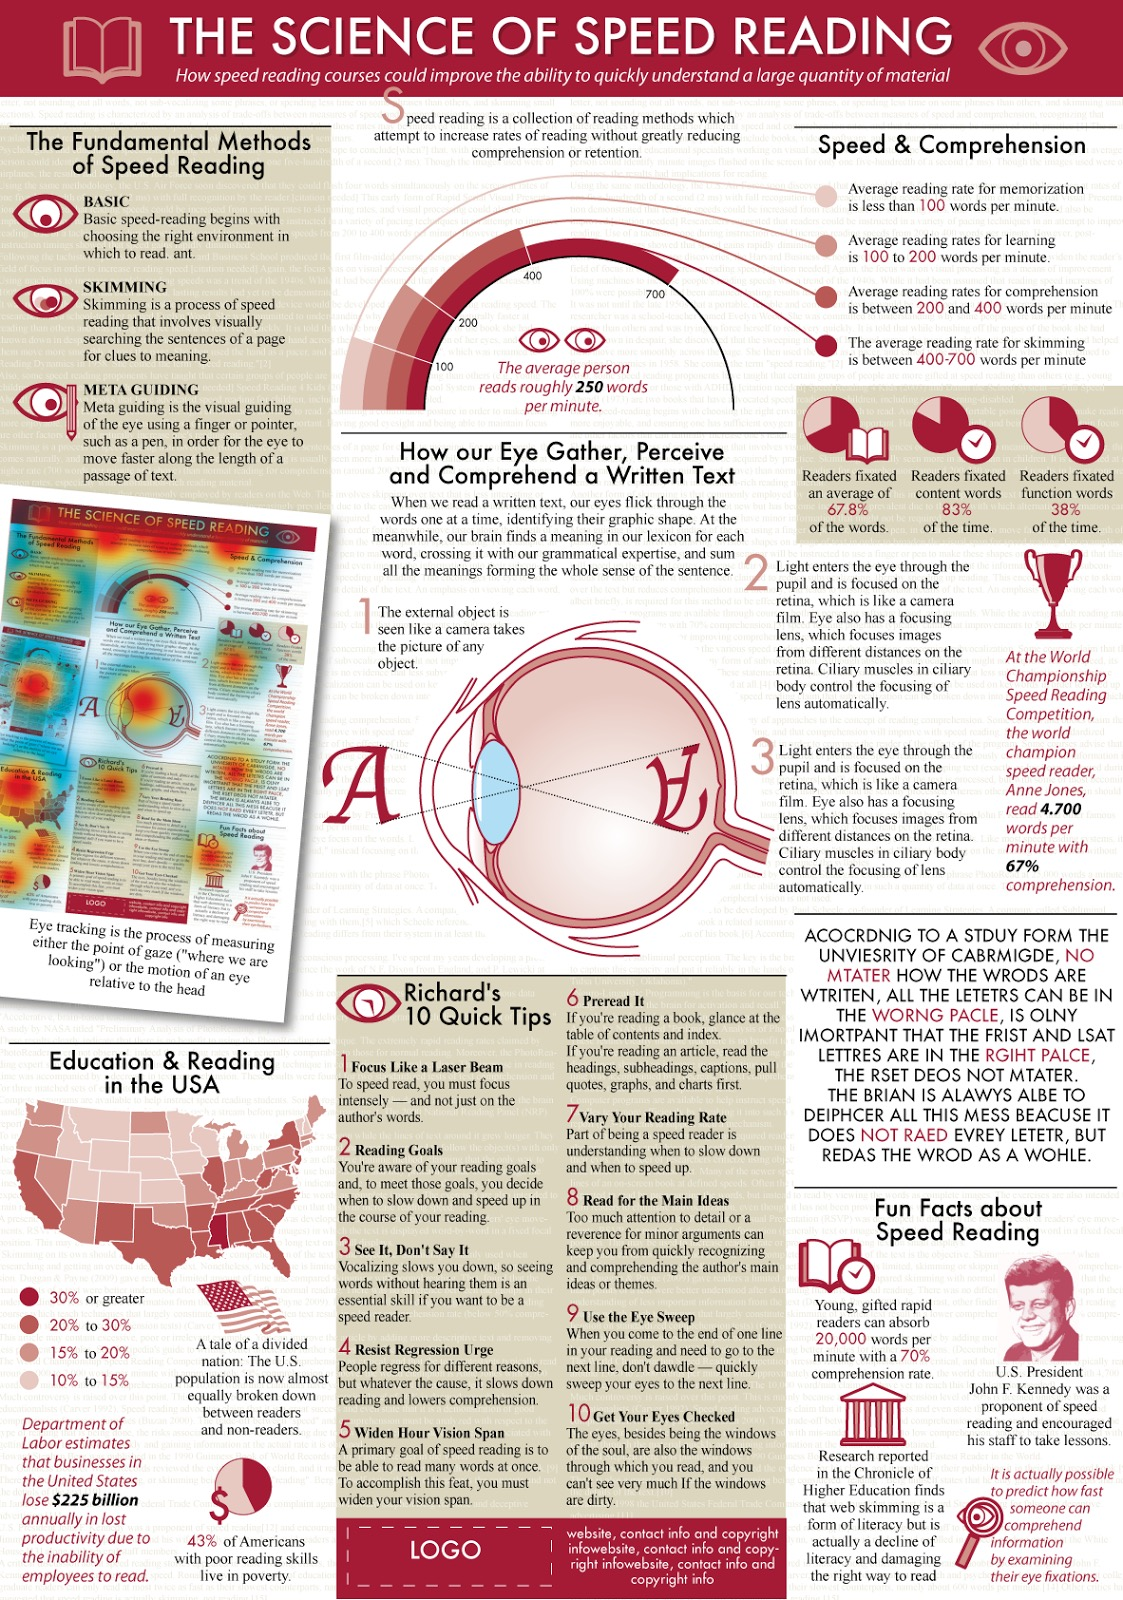 The science of speed reading #infographic